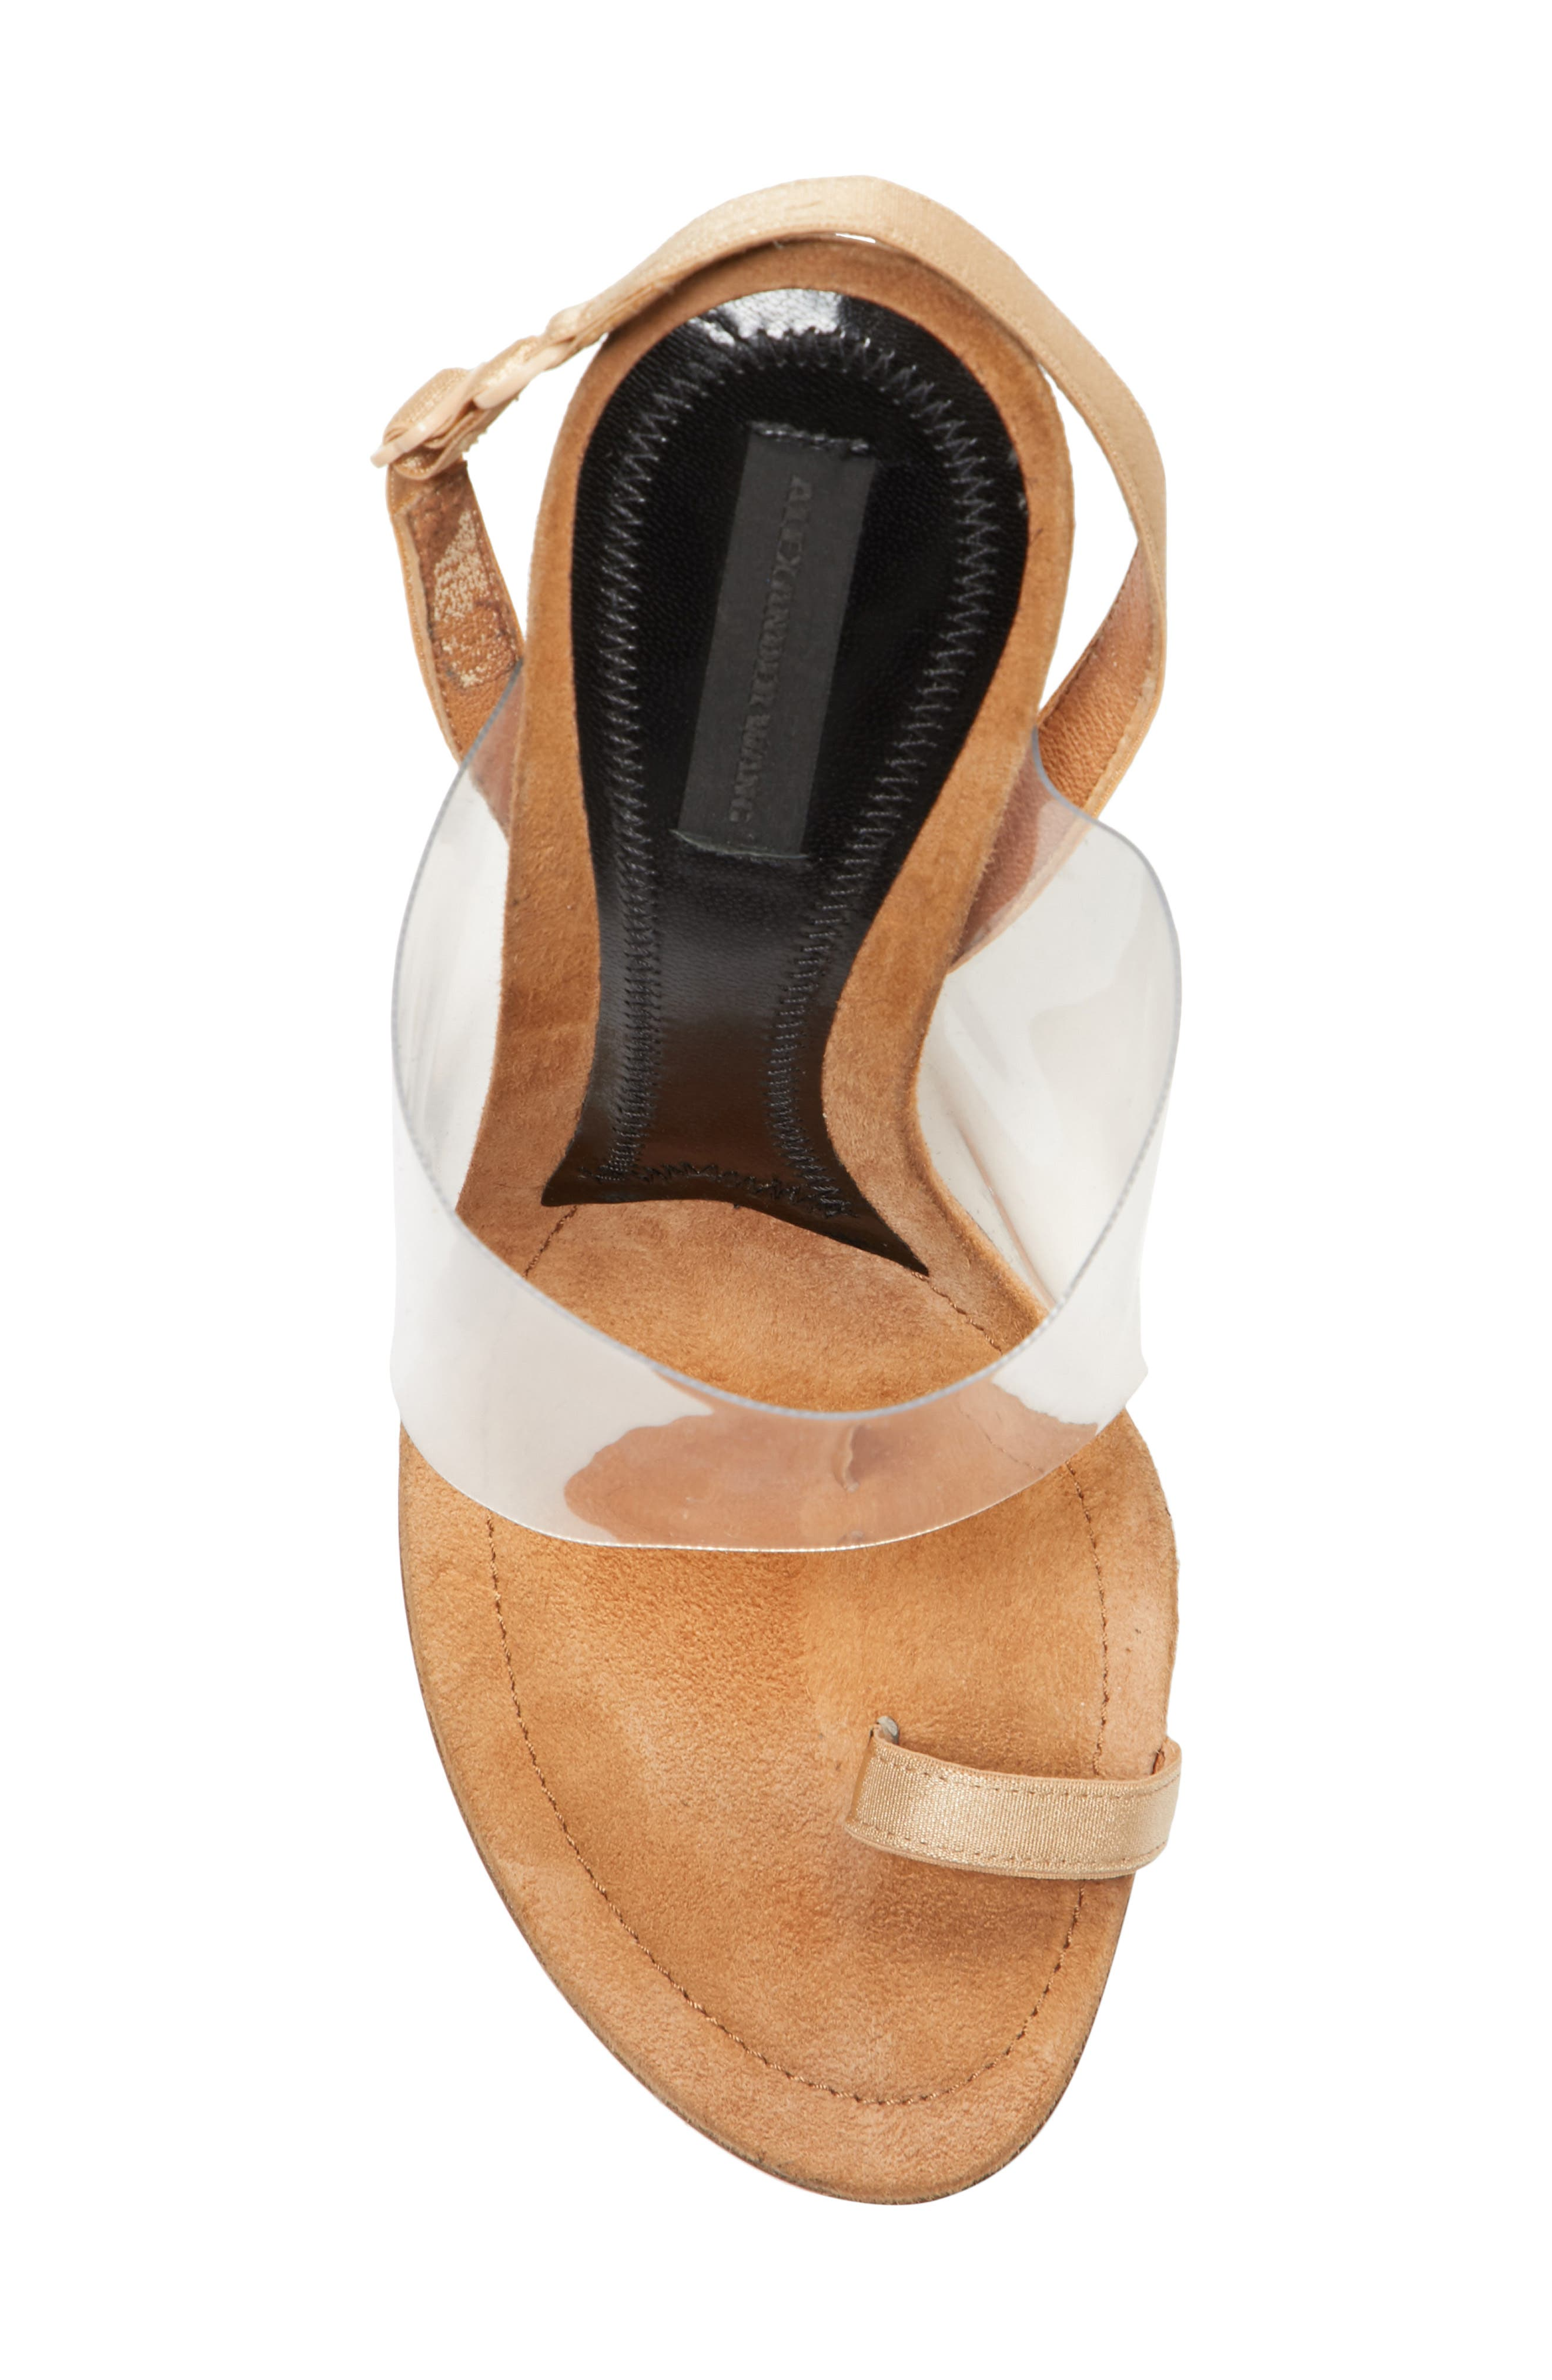 Kaia Sandal,                             Alternate thumbnail 5, color,                             Nude